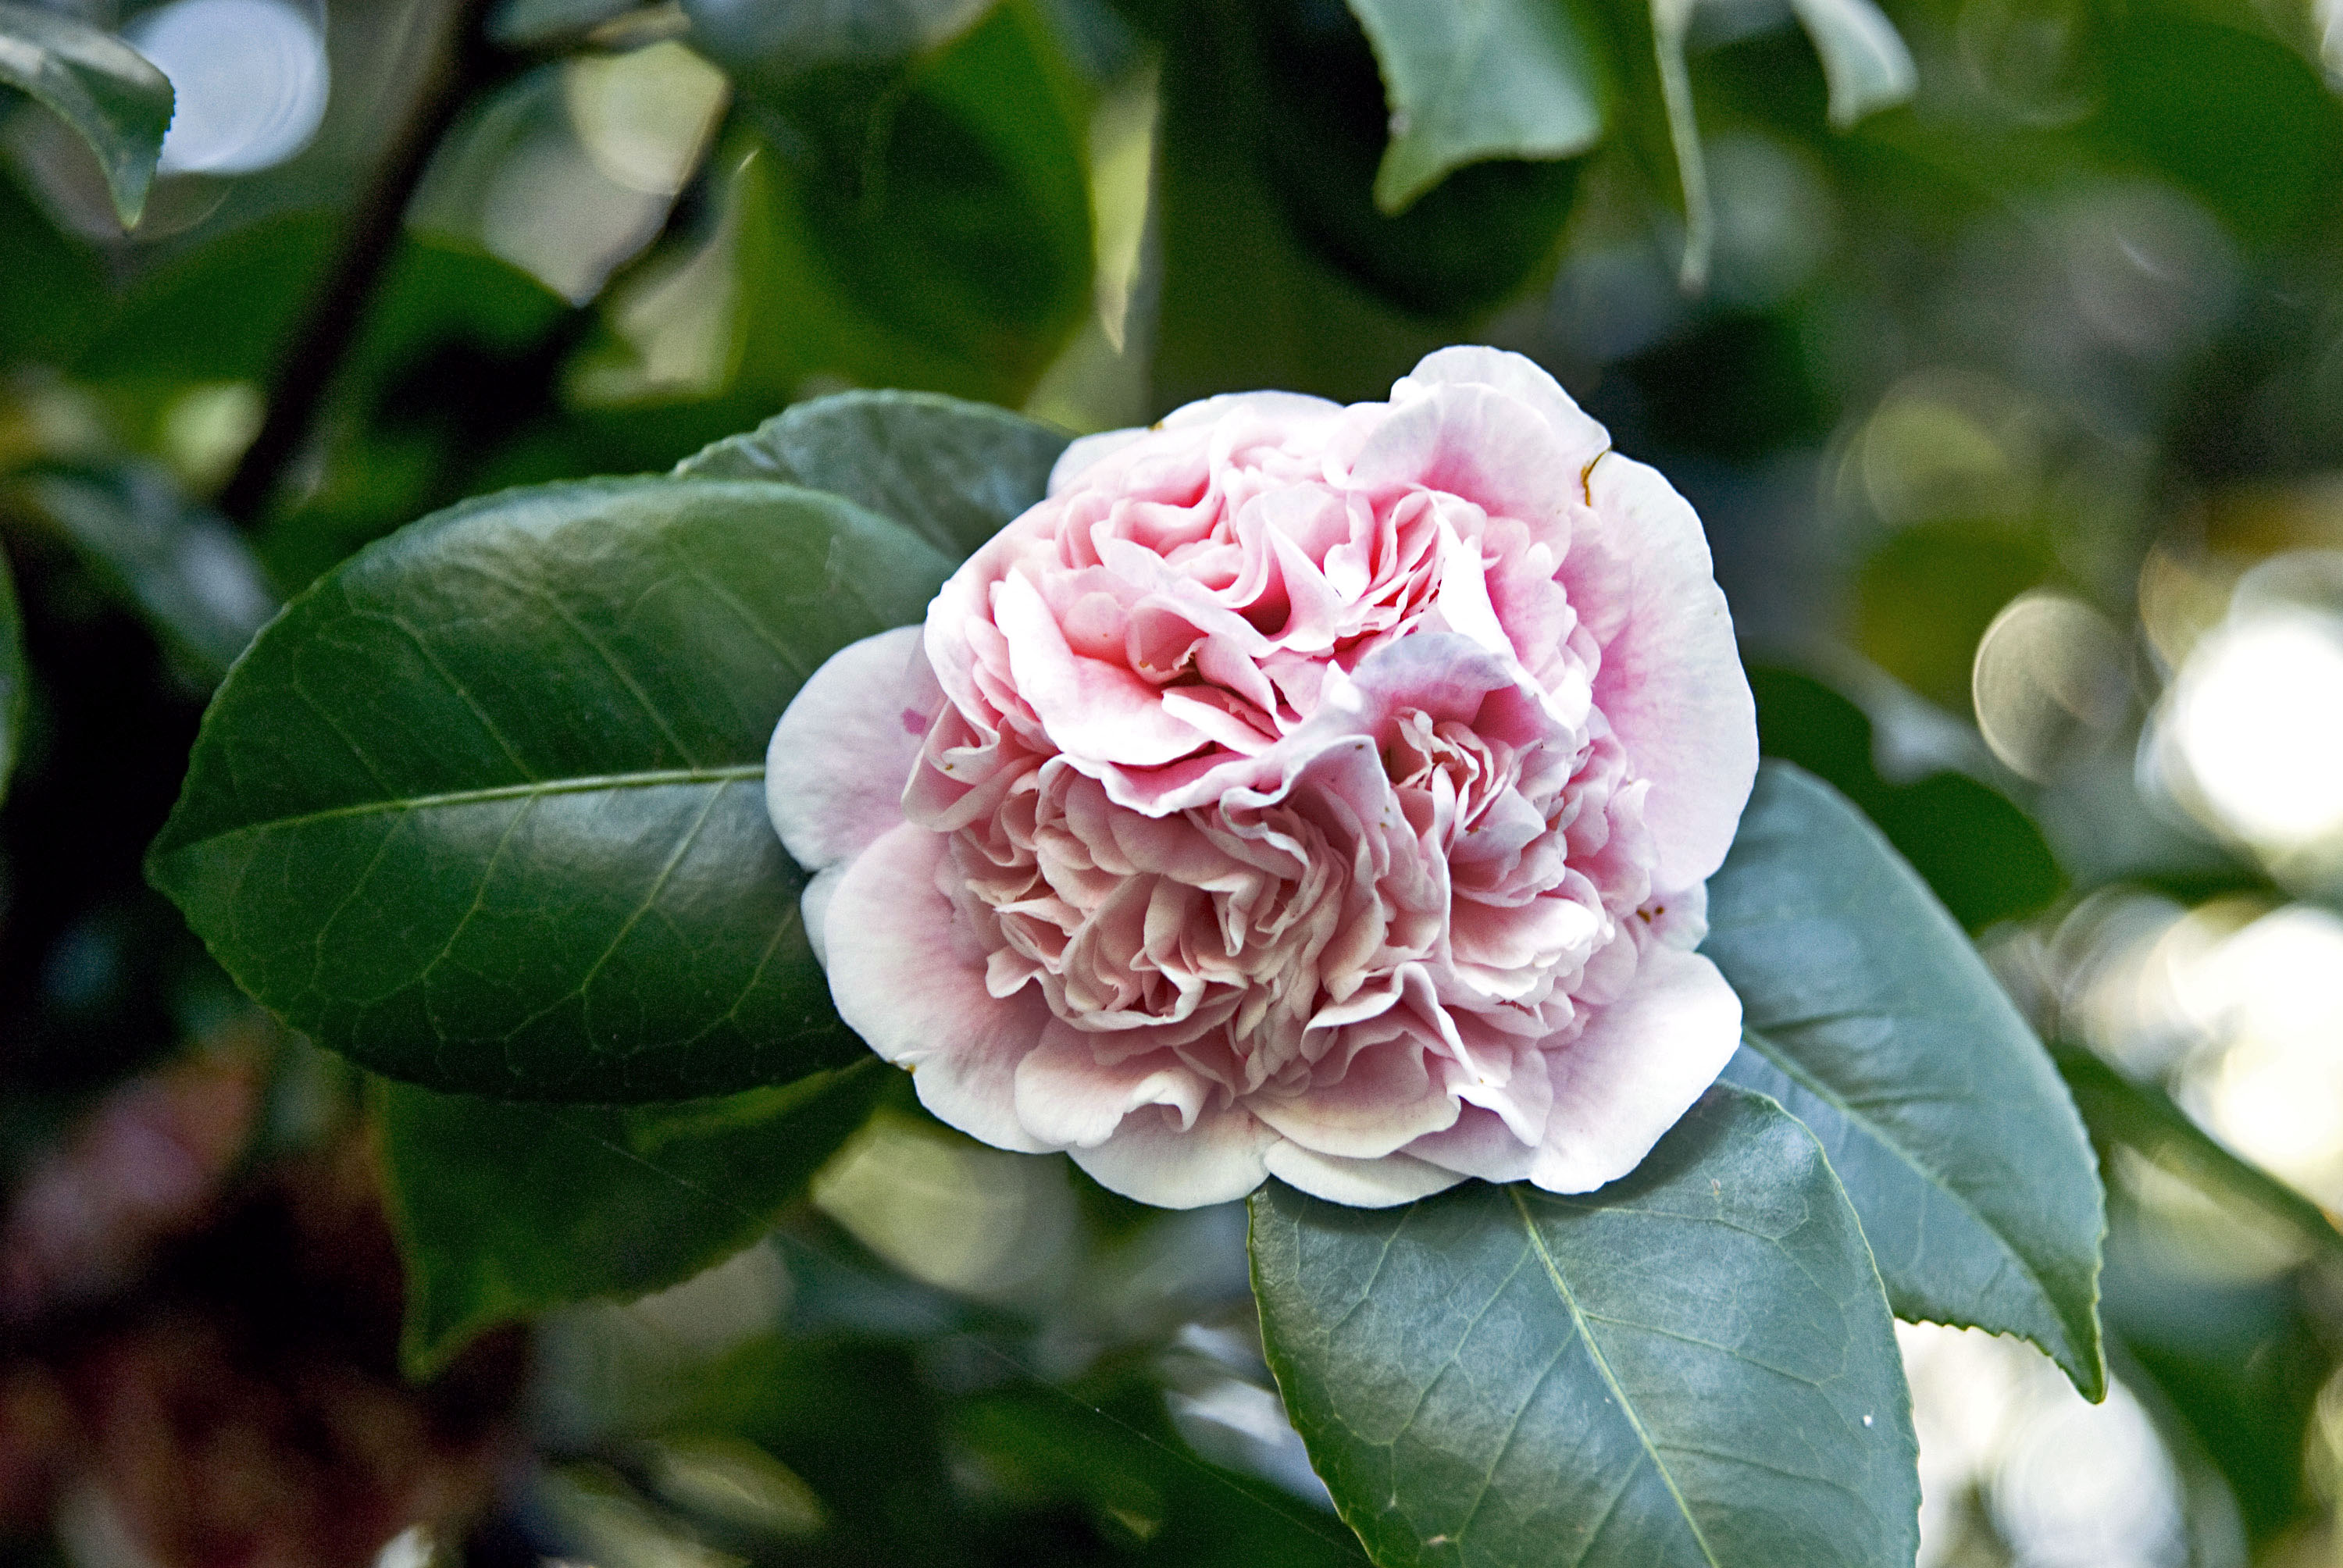 Chameleon camellias